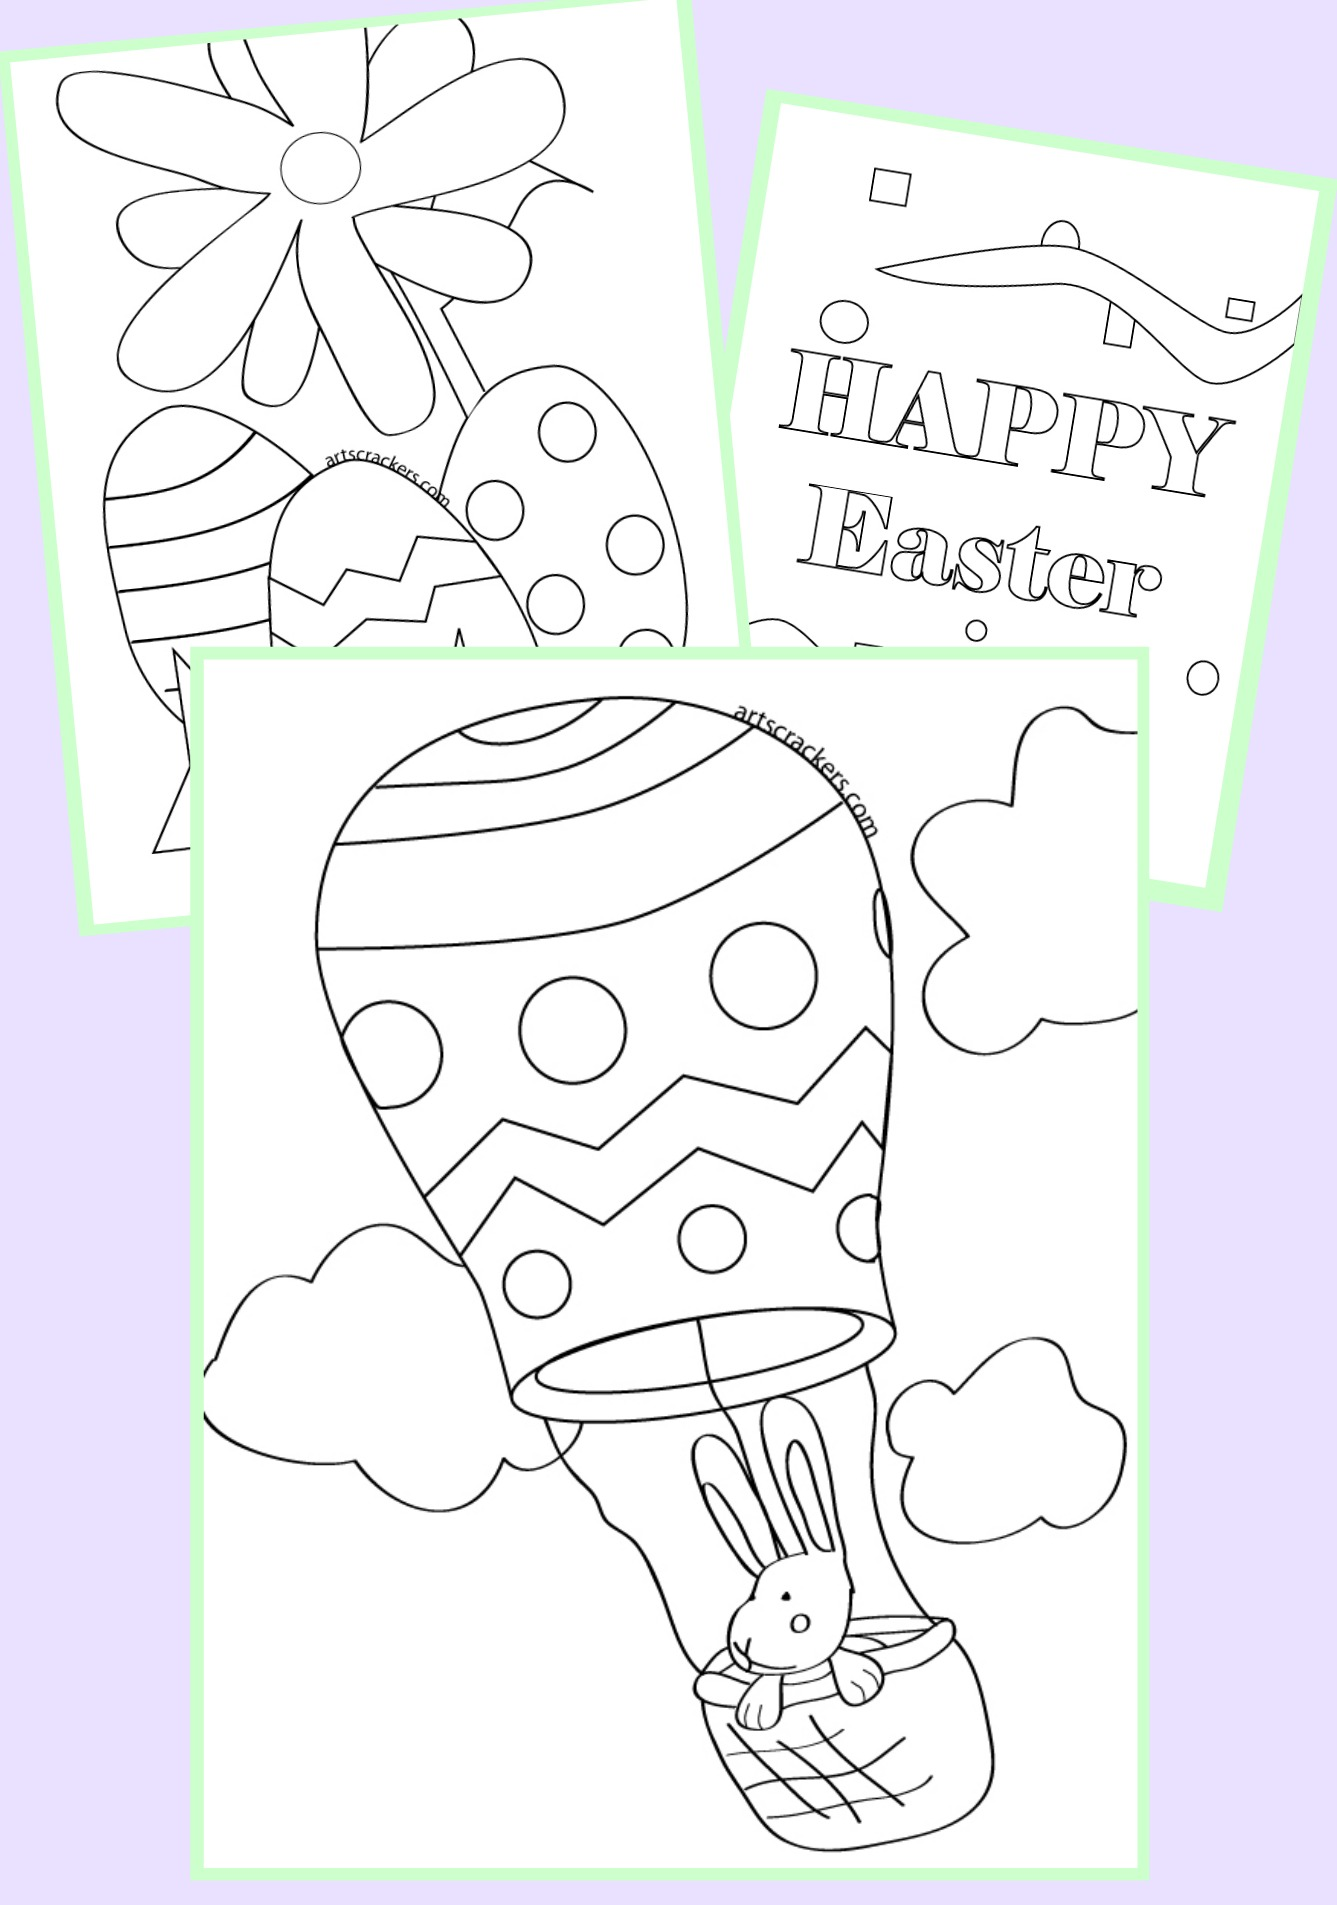 Printable Easter-<br /> themed Coloring Pages for Kids